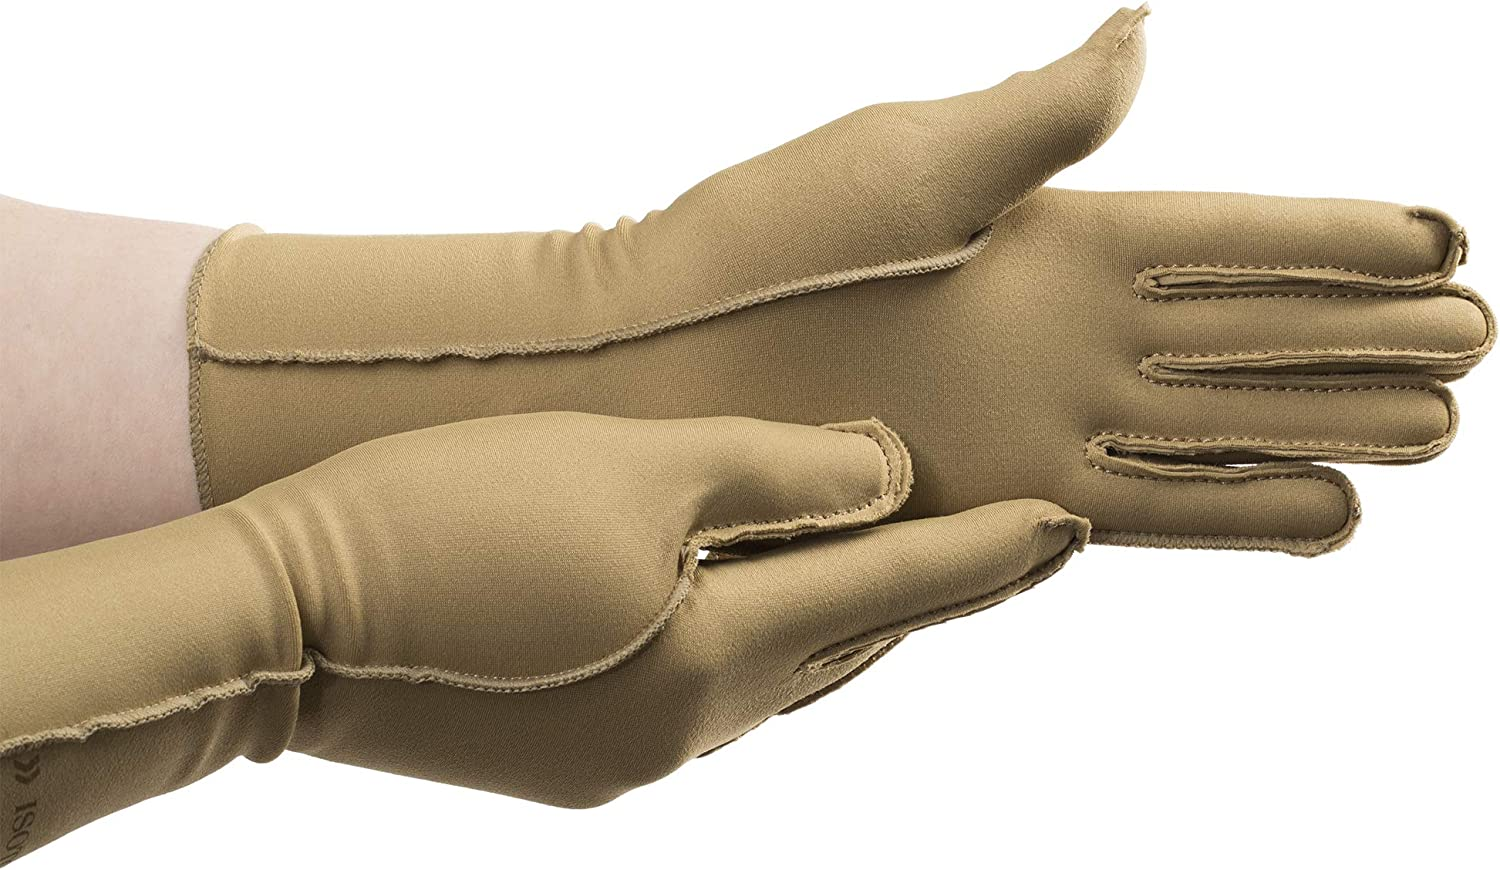 isotoner Unisex-Adult Therapeutic Compression Pain Relief Gloves